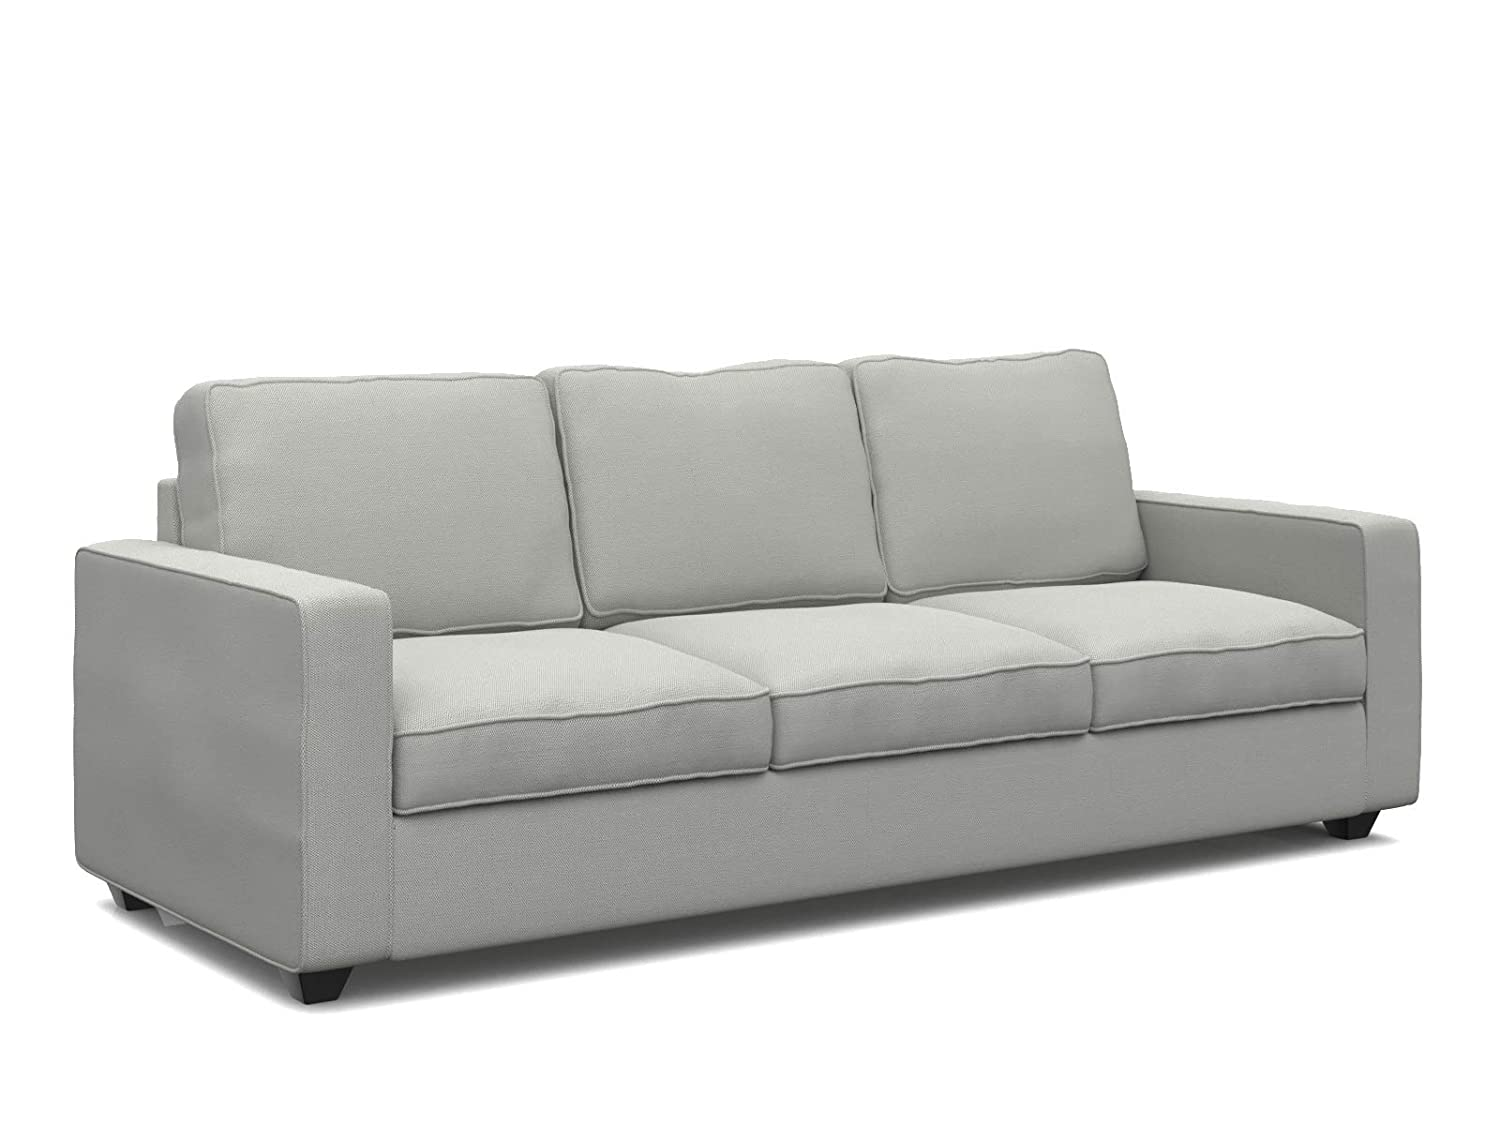 Forzza Montreal Three Seater Sectional Sofa (Beige): Amazon ...